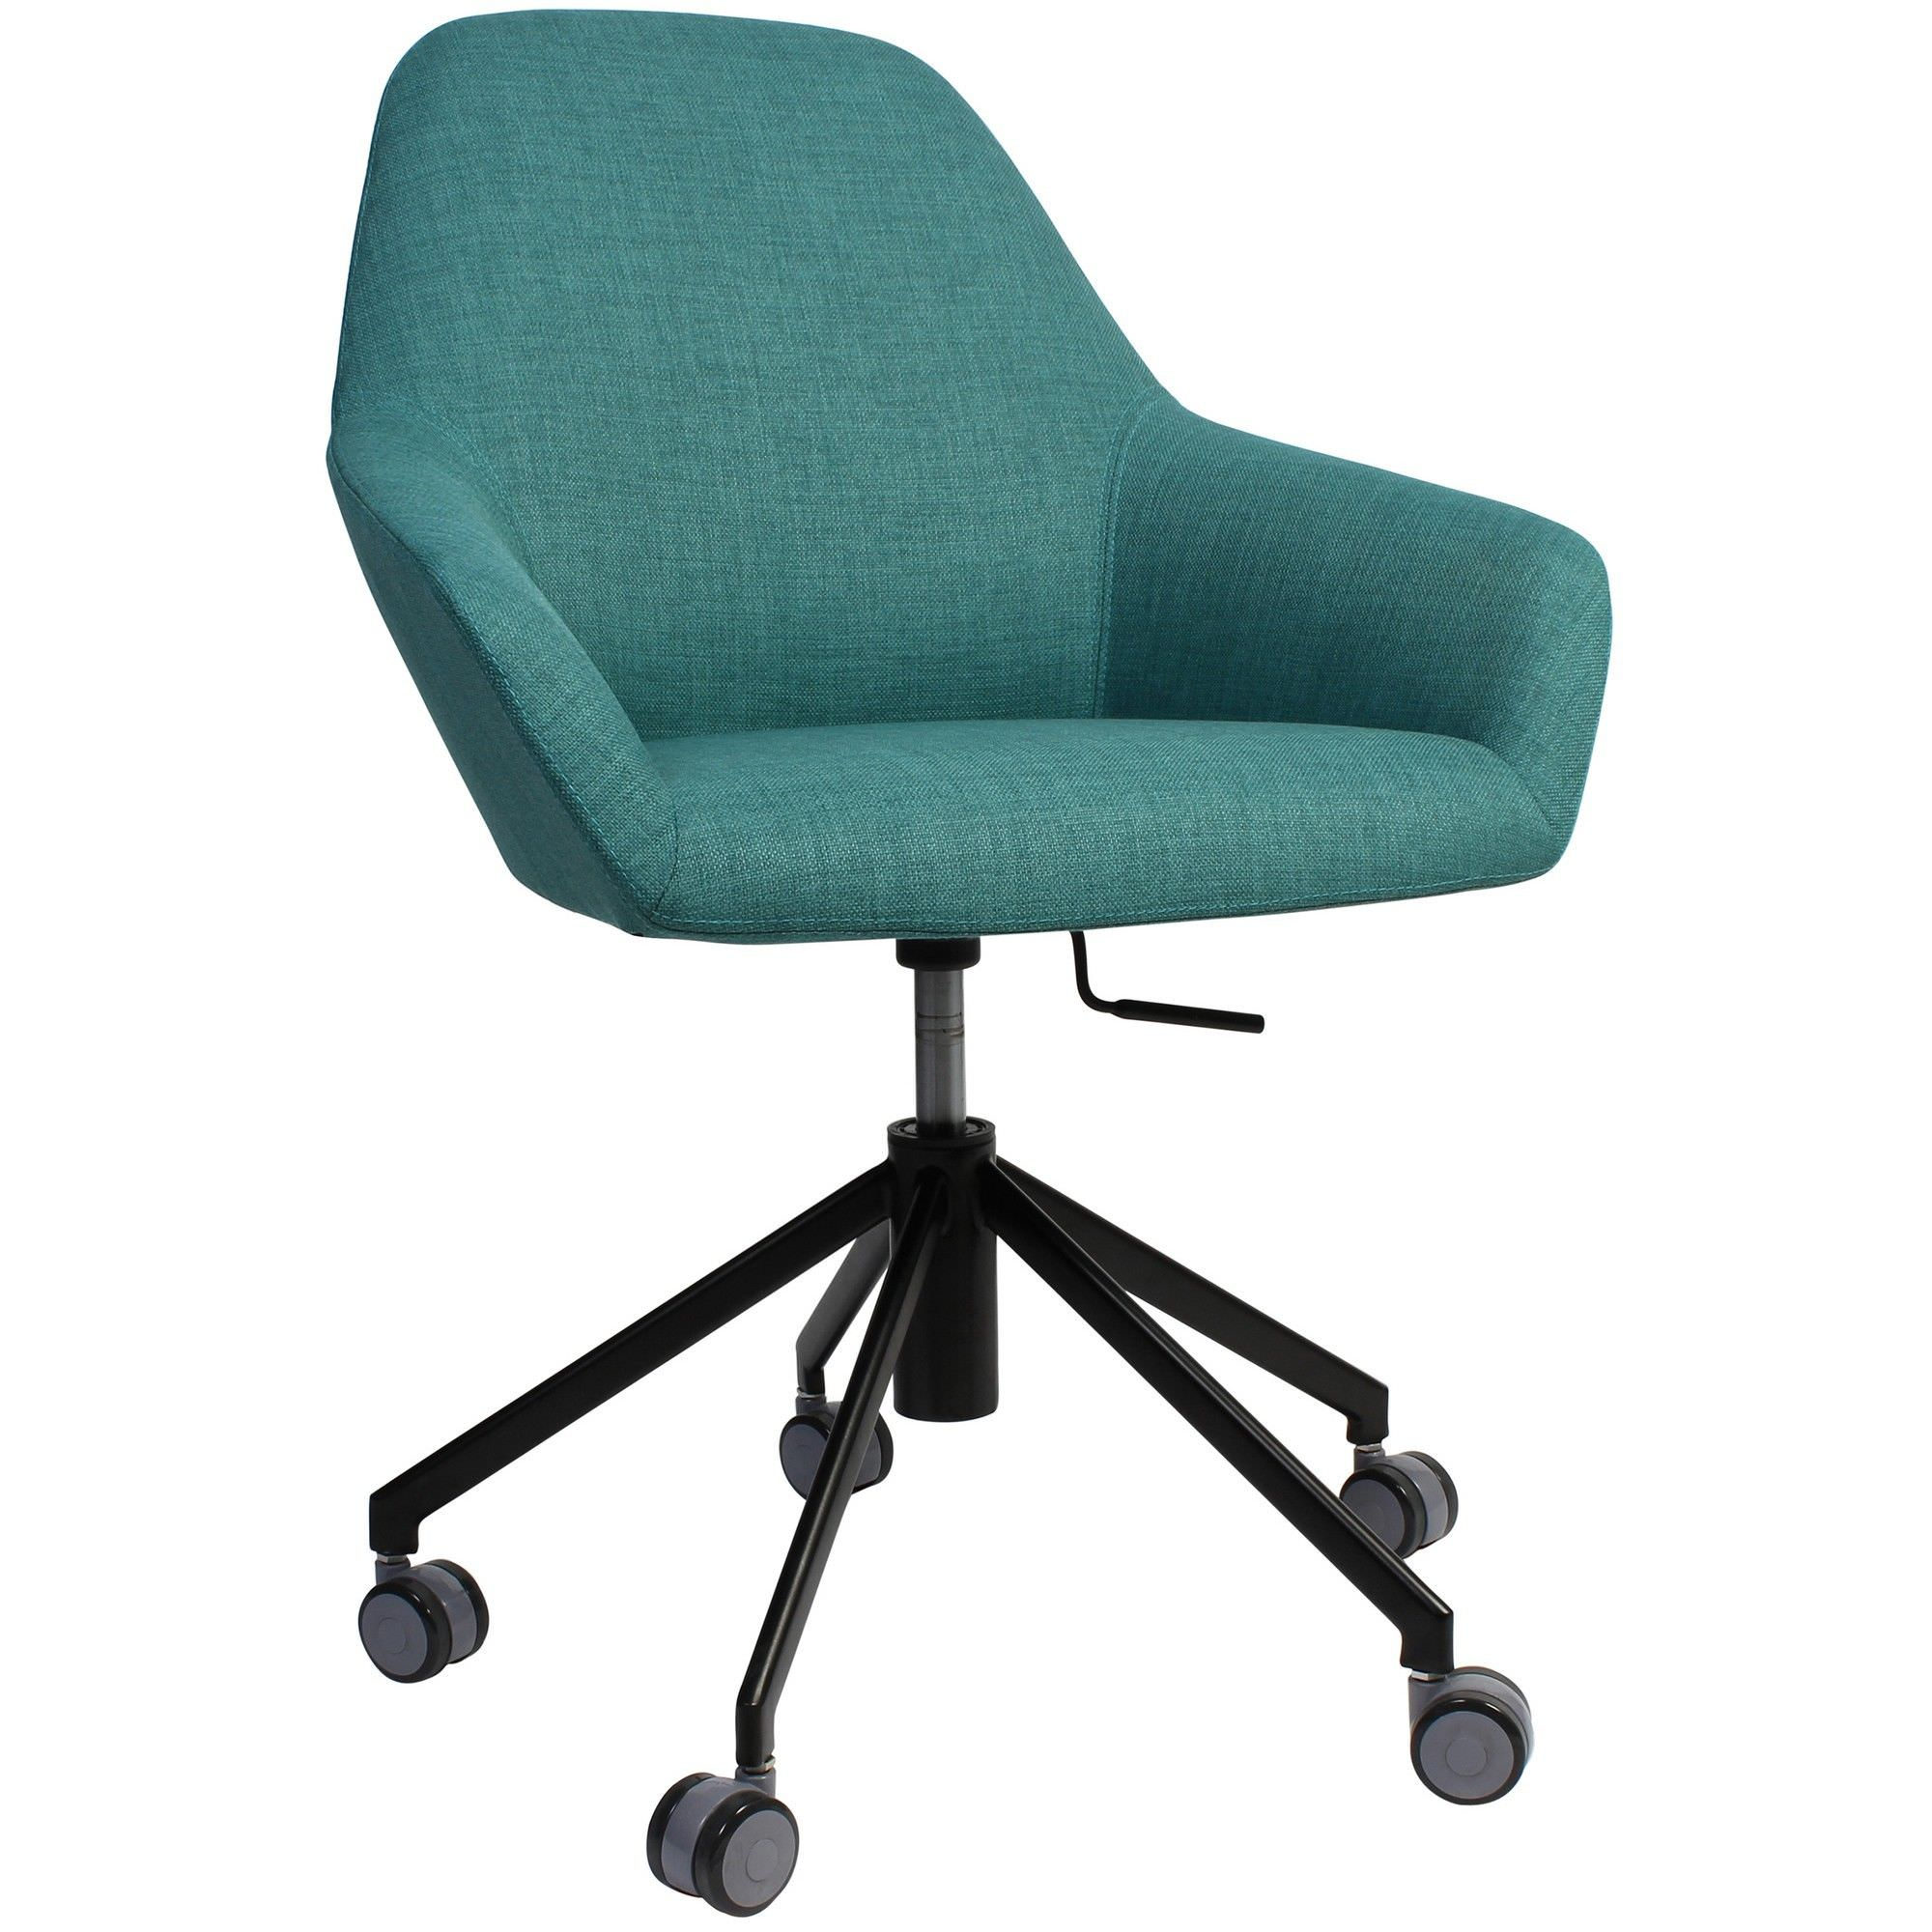 Bronte Commercial Grade Gas Lift Fabric Office Armchair, Teal / Black